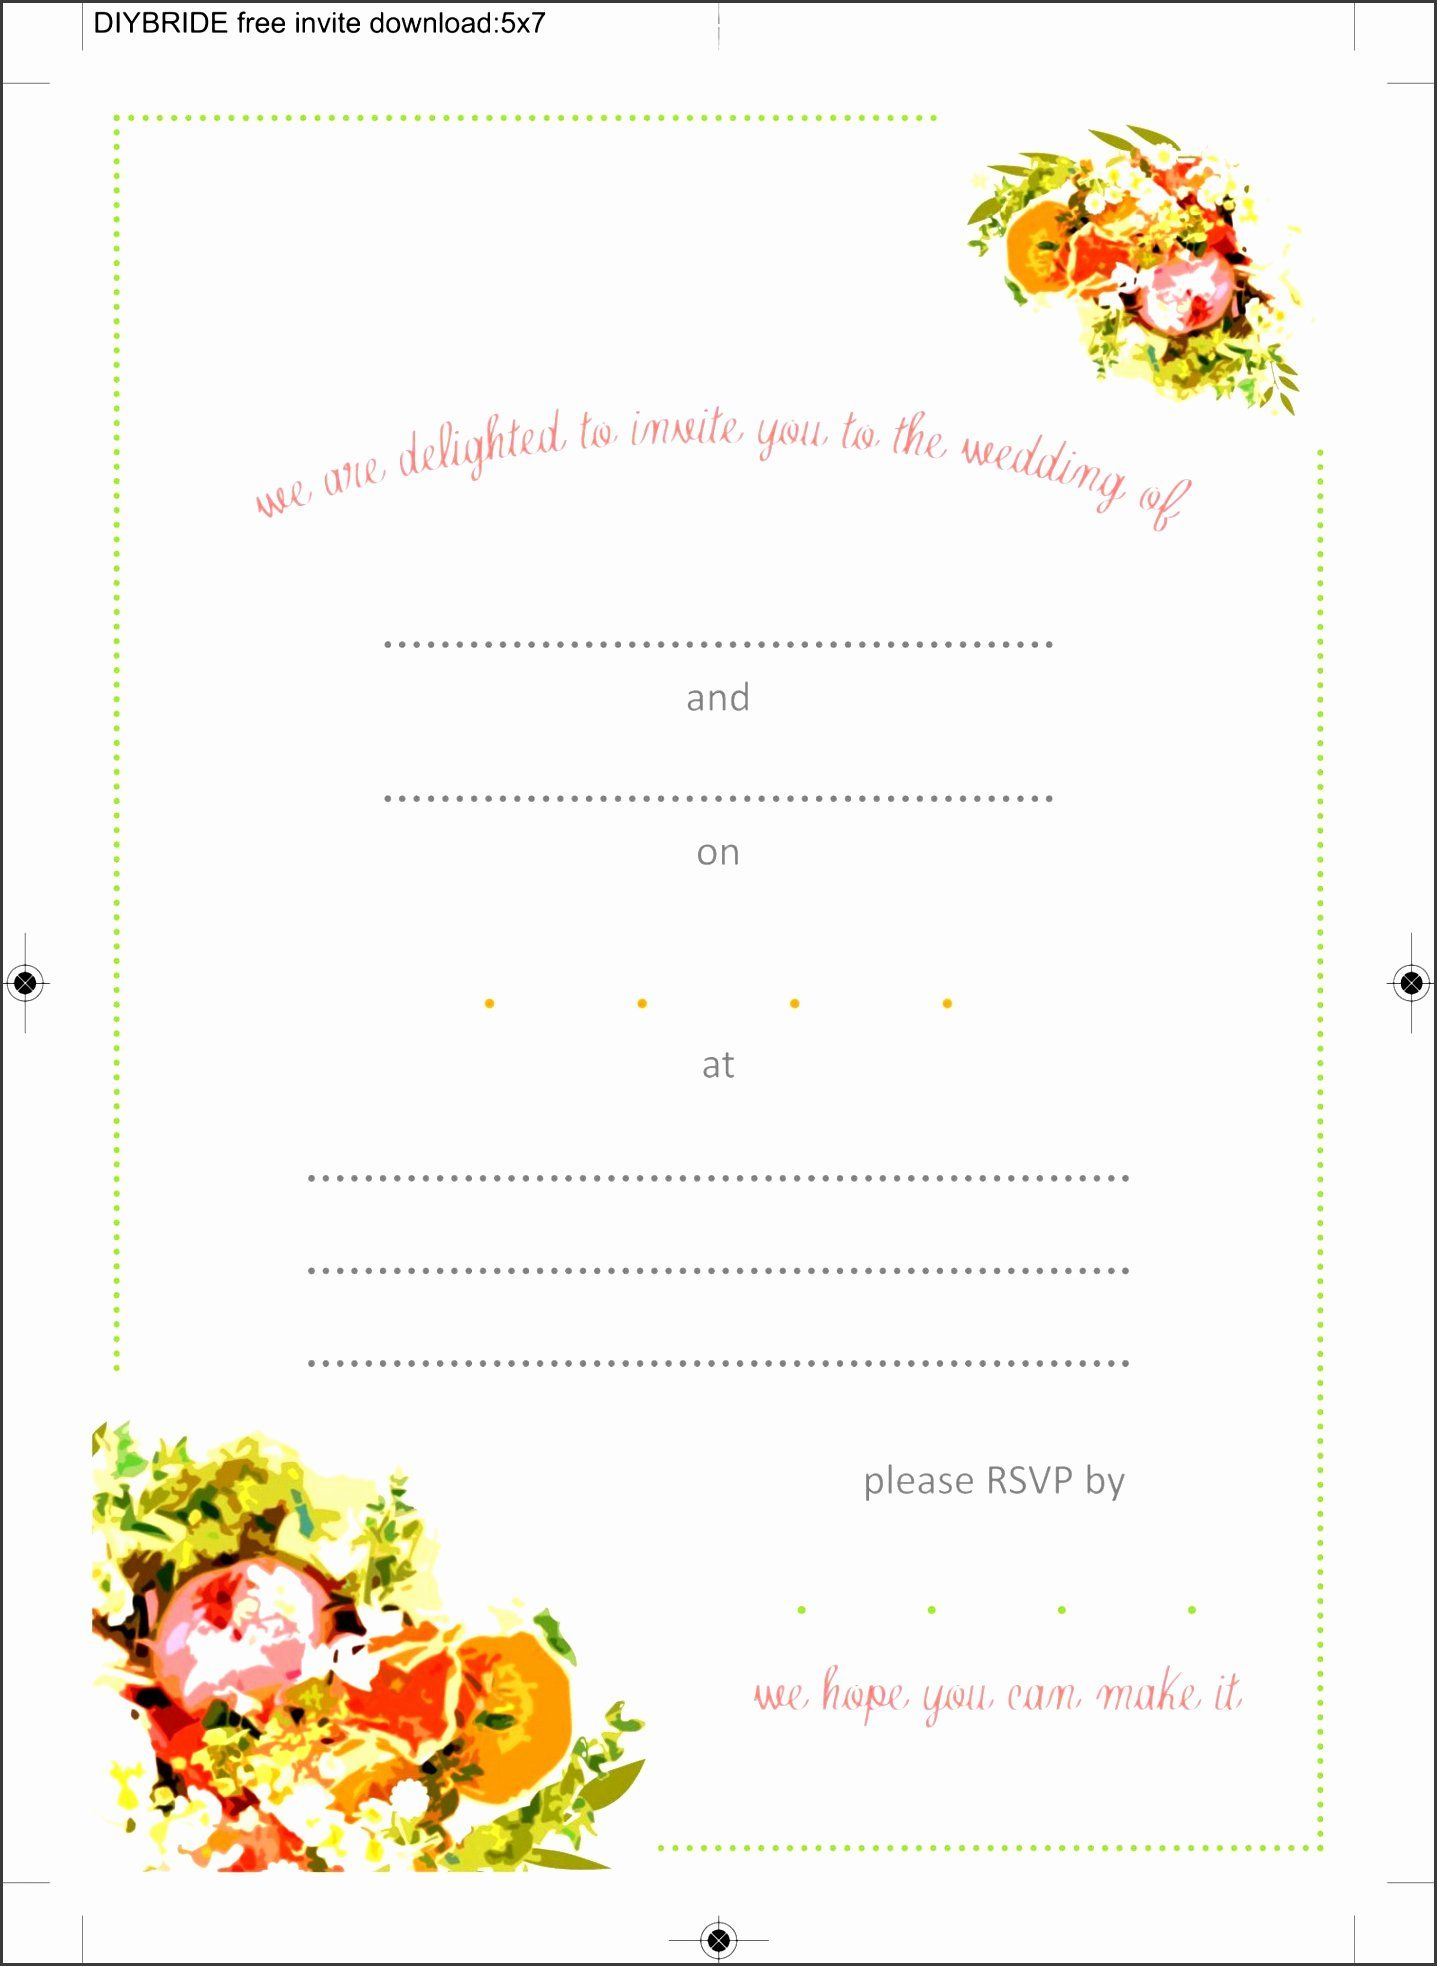 Party Invitation Template Microsoft Word Lovely 10 Ms Word Birthday Party Invit Party Invite Template Free Invitation Templates Free Party Invitation Templates